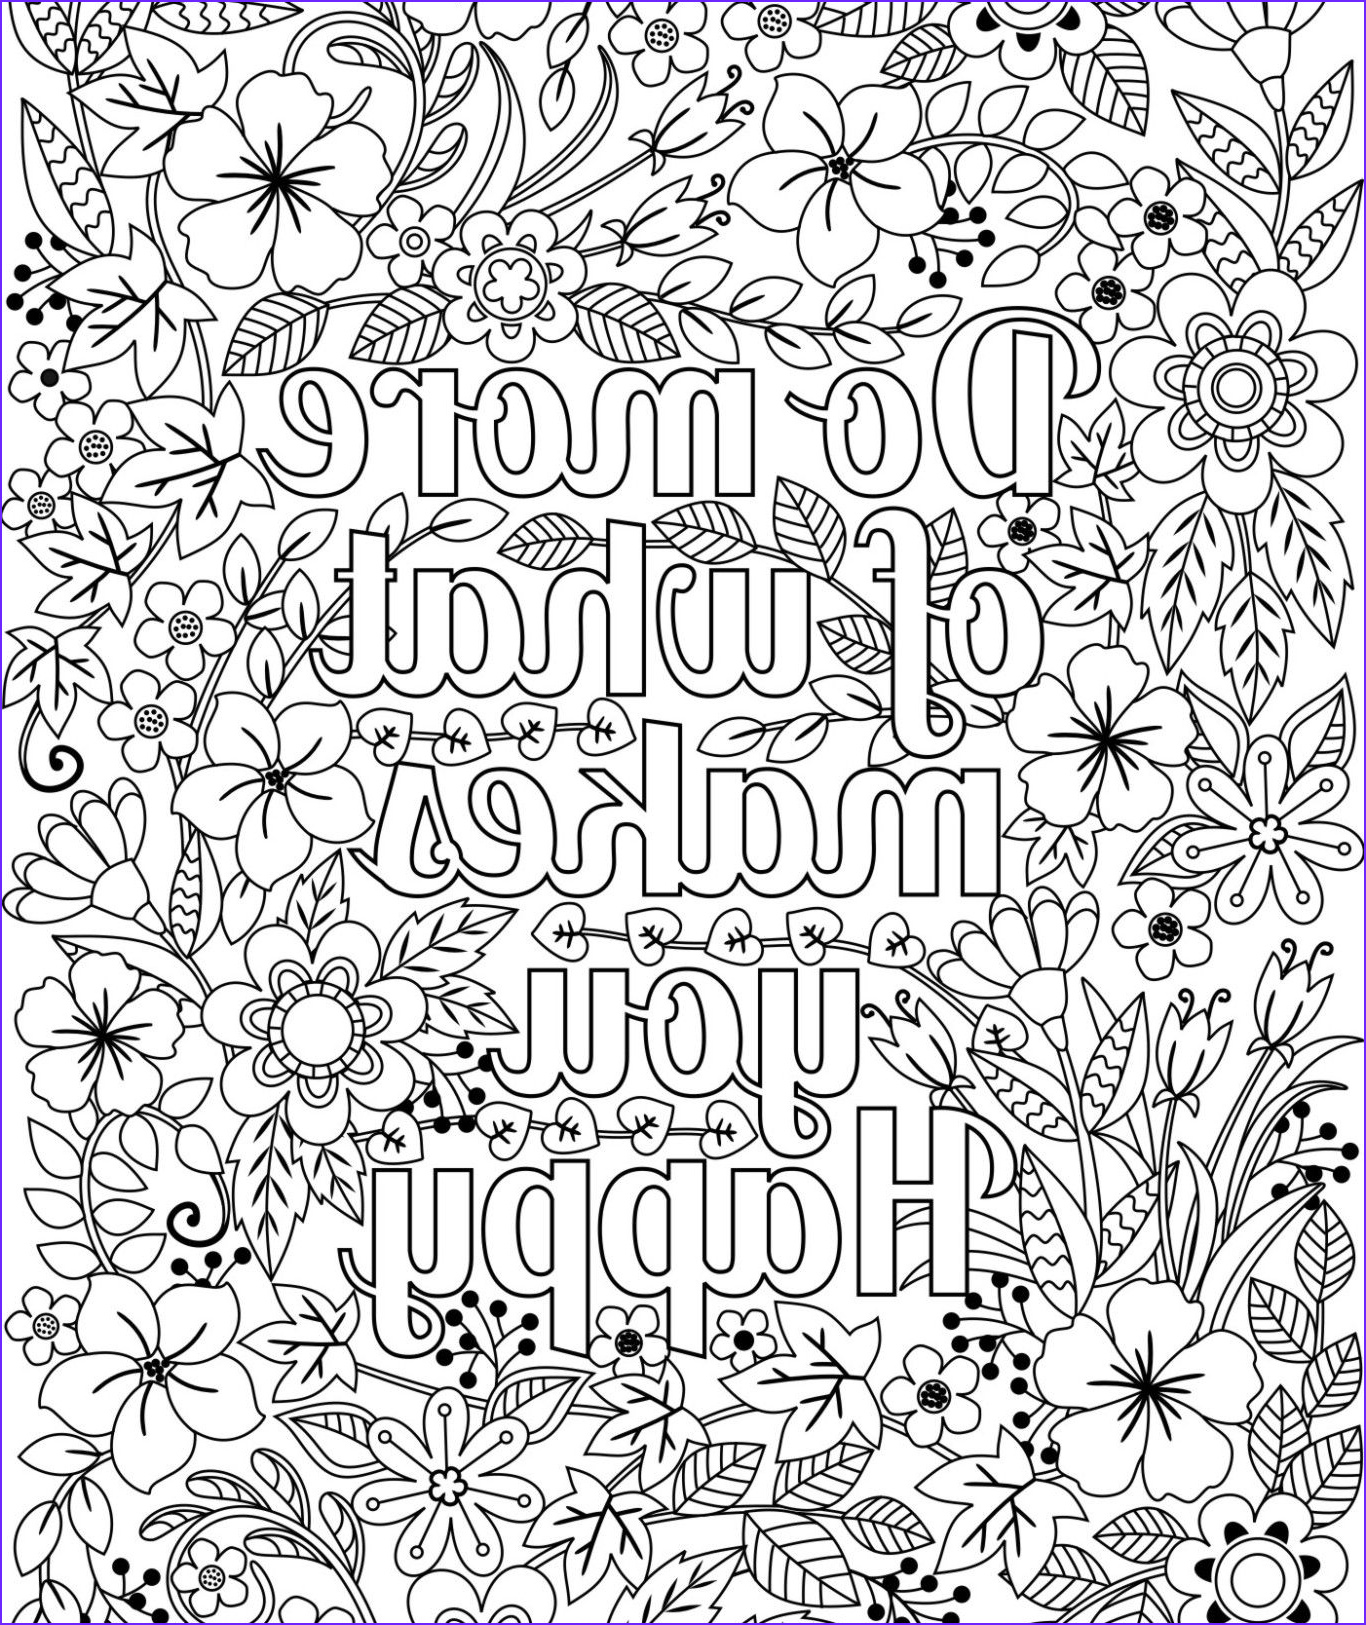 Coloring Design Pages Unique Photography Do More Of What Makes You Happy Coloring Page for Kids